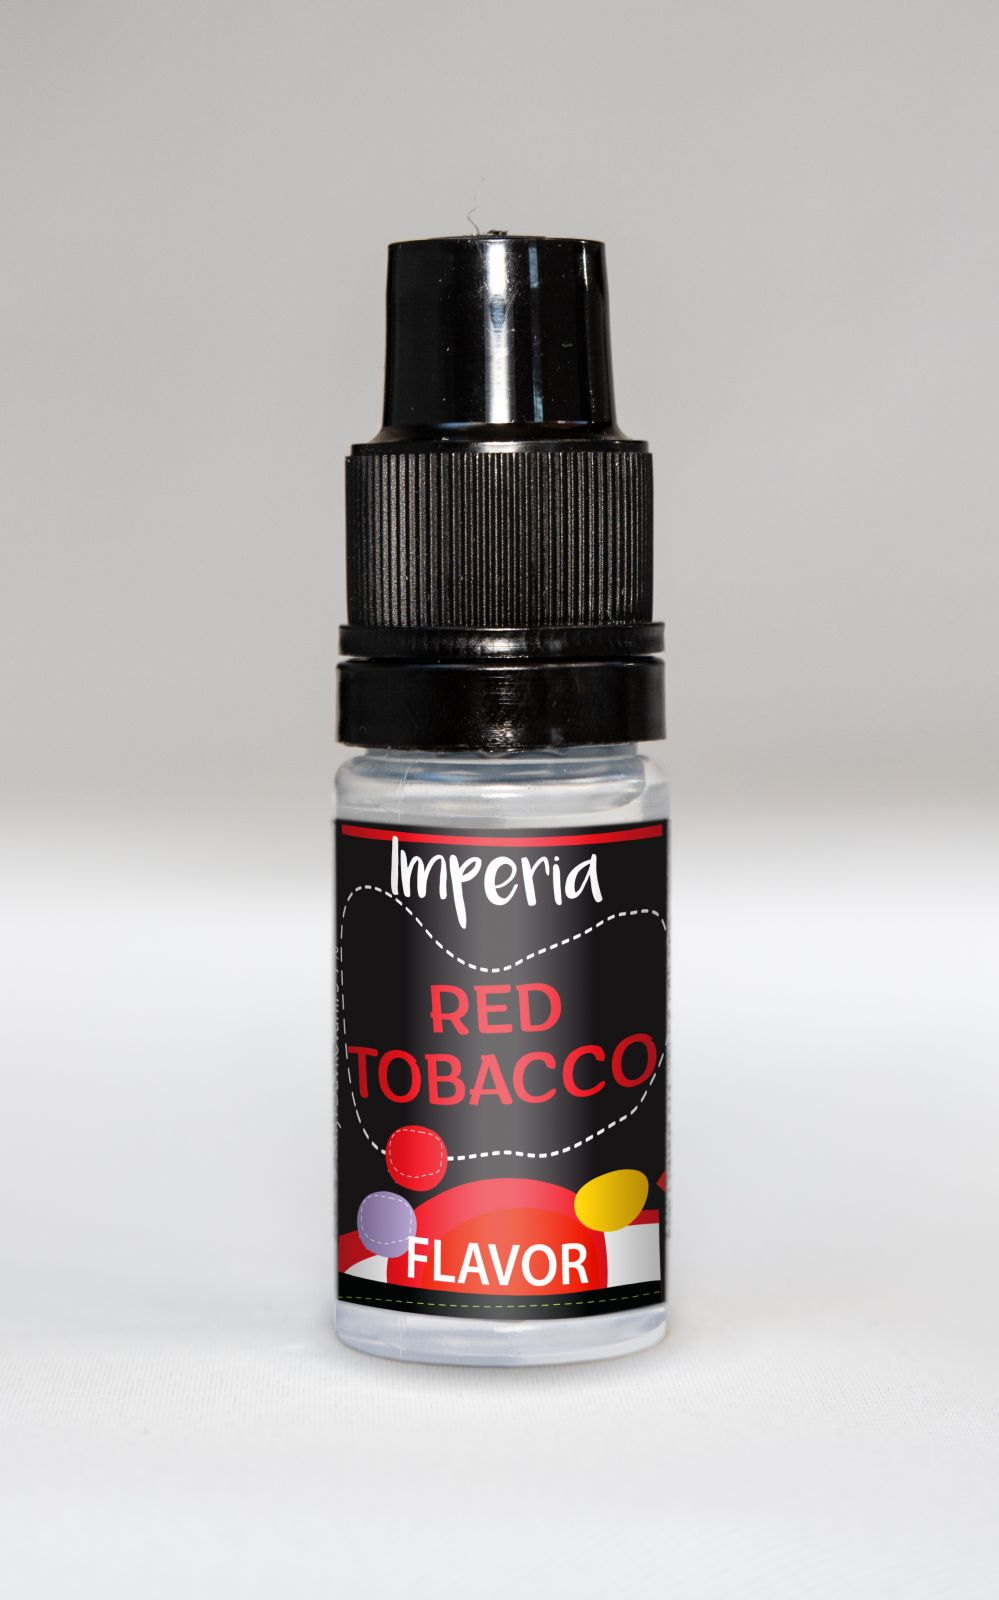 RED TOBACCO - Aróma Imperia Black Label Boudoir Samadhi s.r.o.